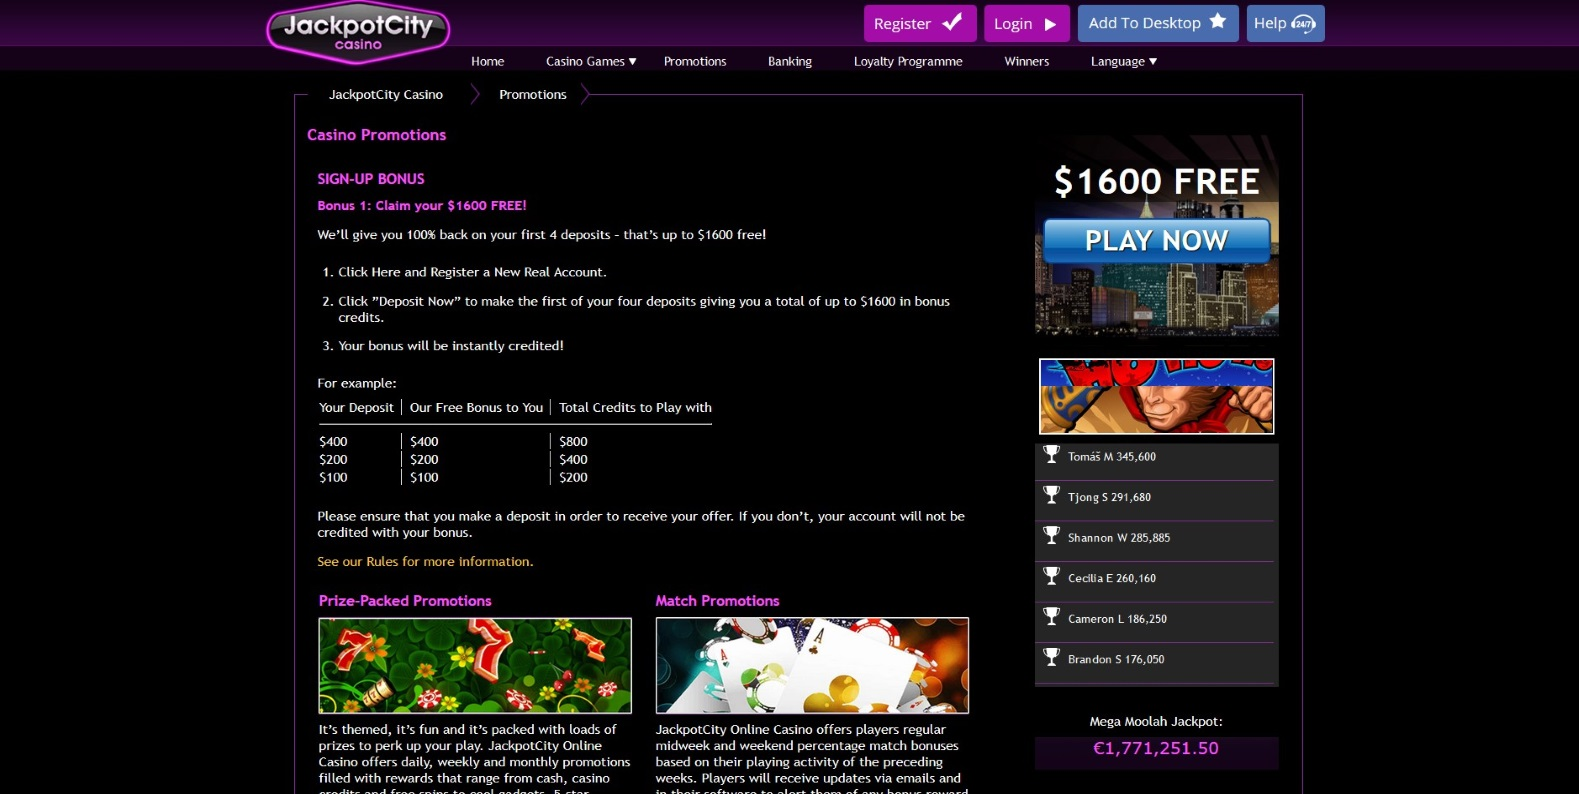 JackpotCity Casino All Promotions